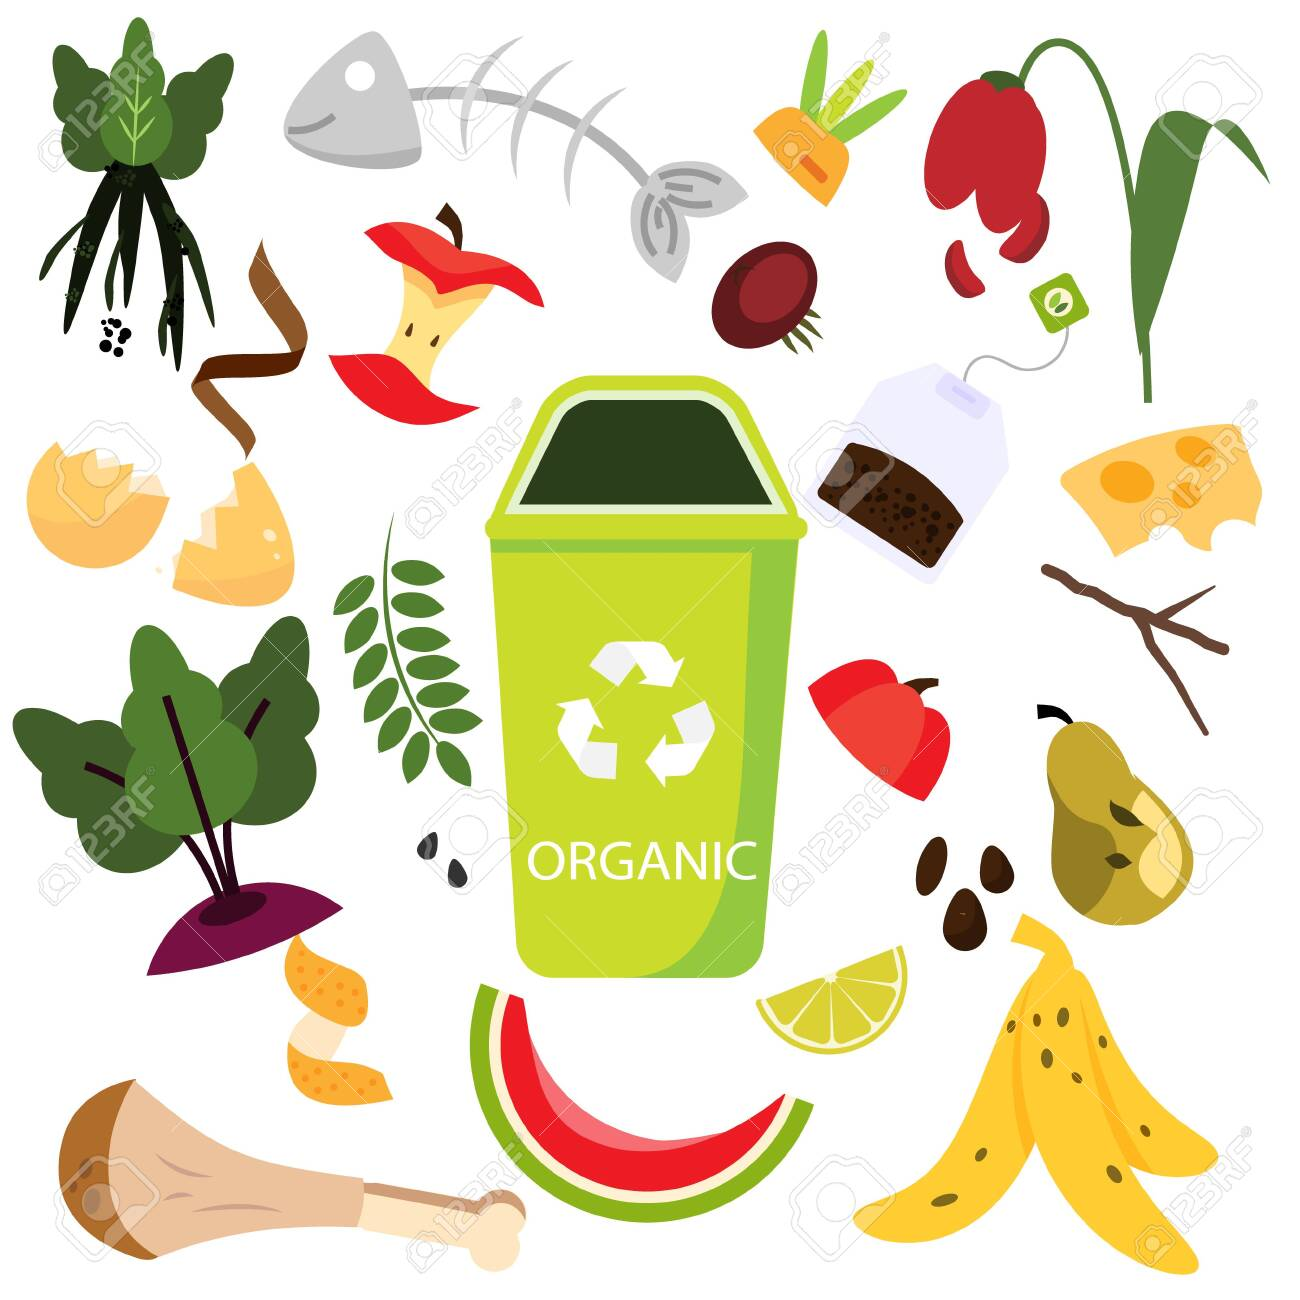 Waste sorting. Organic garbage. Food, natural, bones and other trash icons. - 123965812